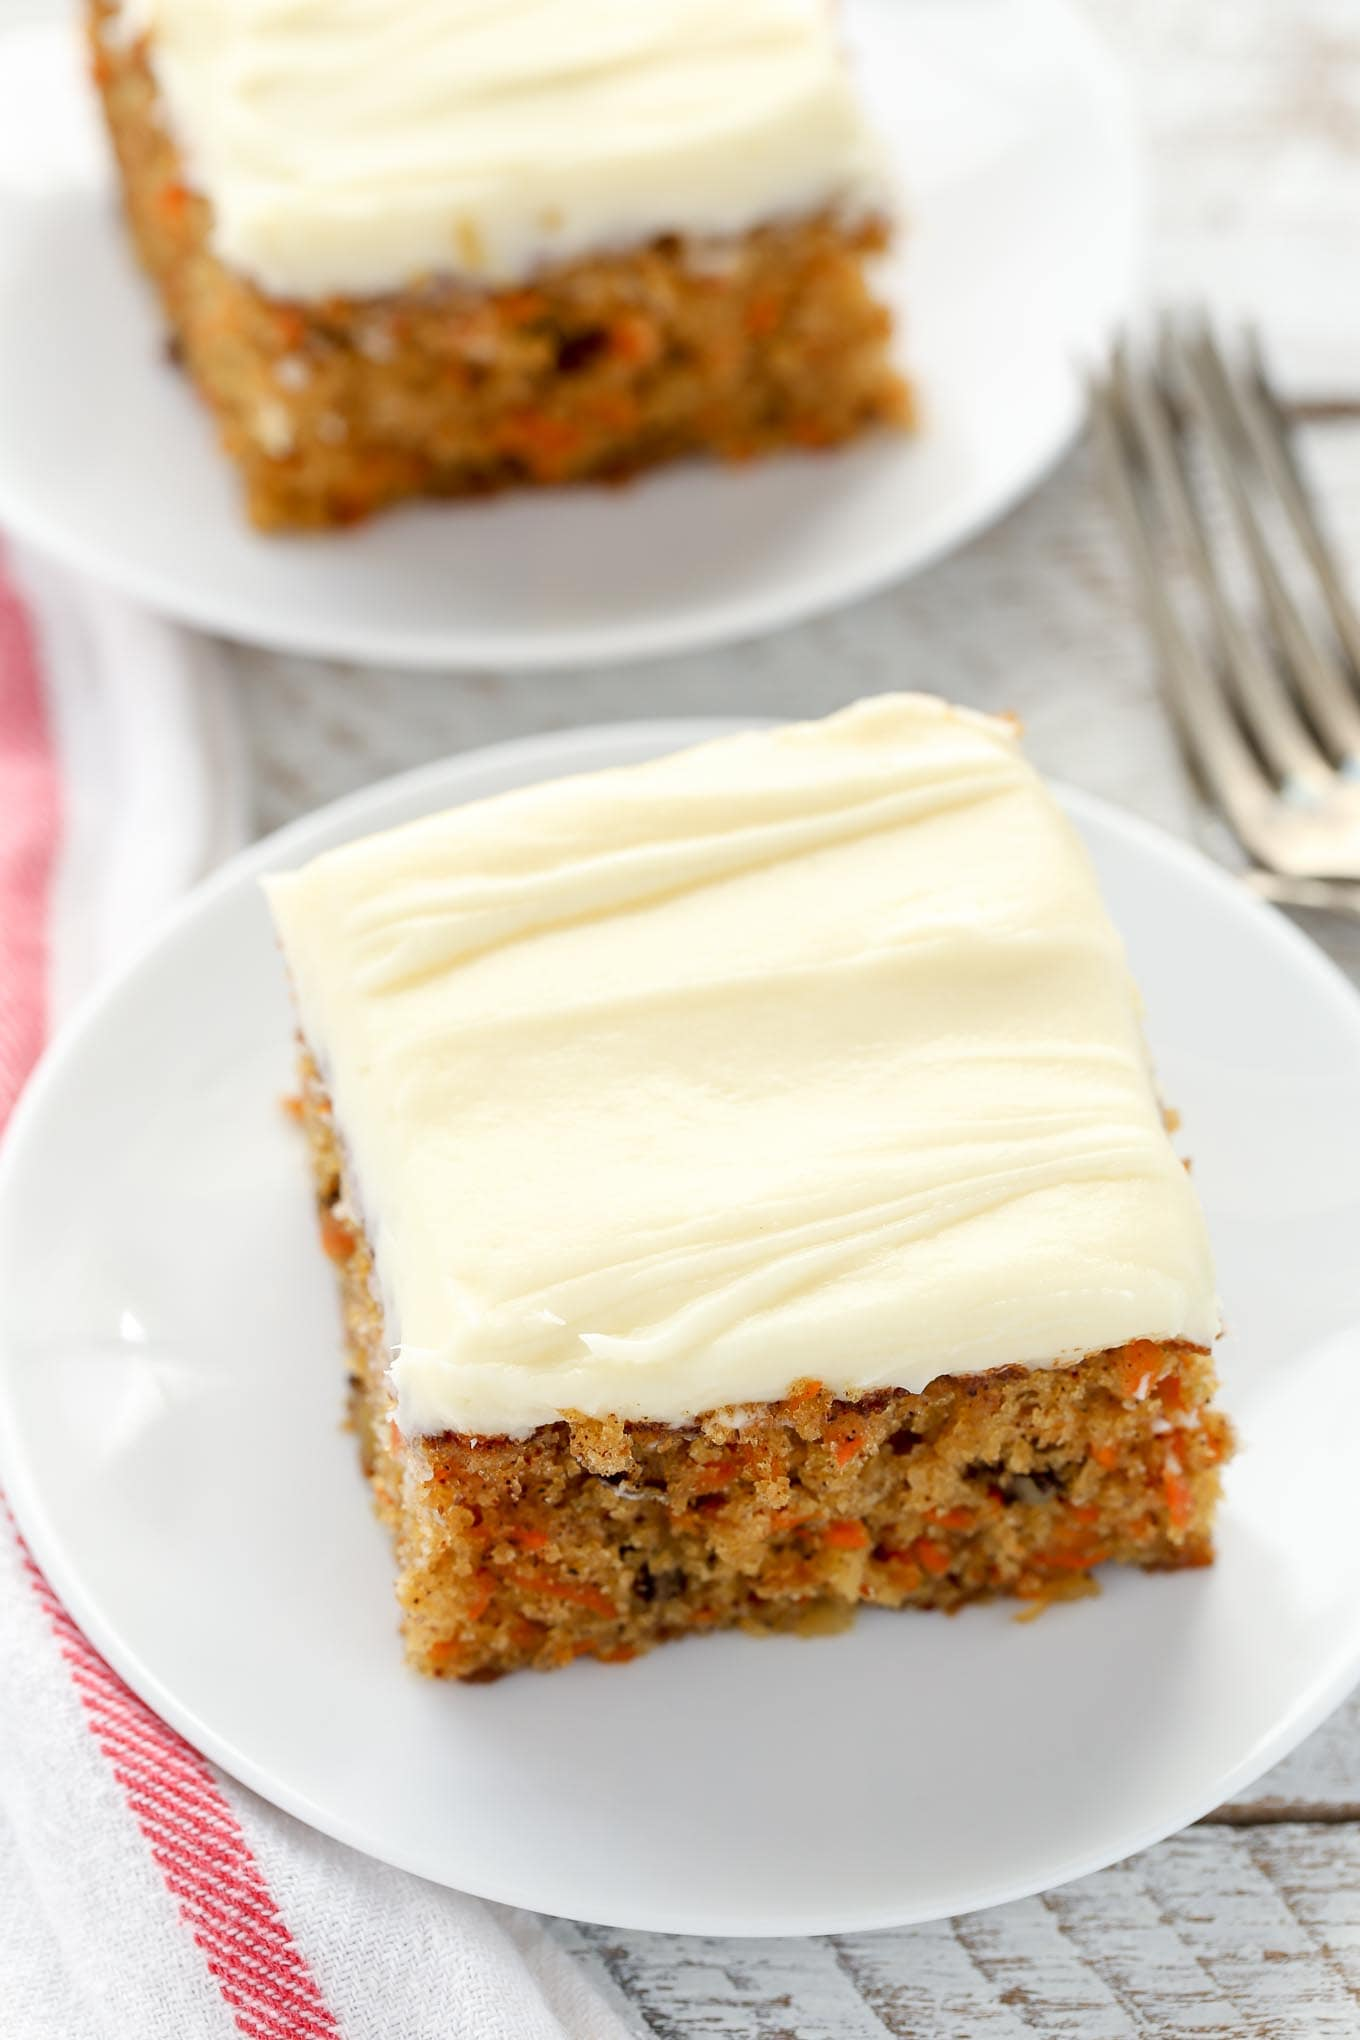 Carrot cake recipe without pineapple or nuts